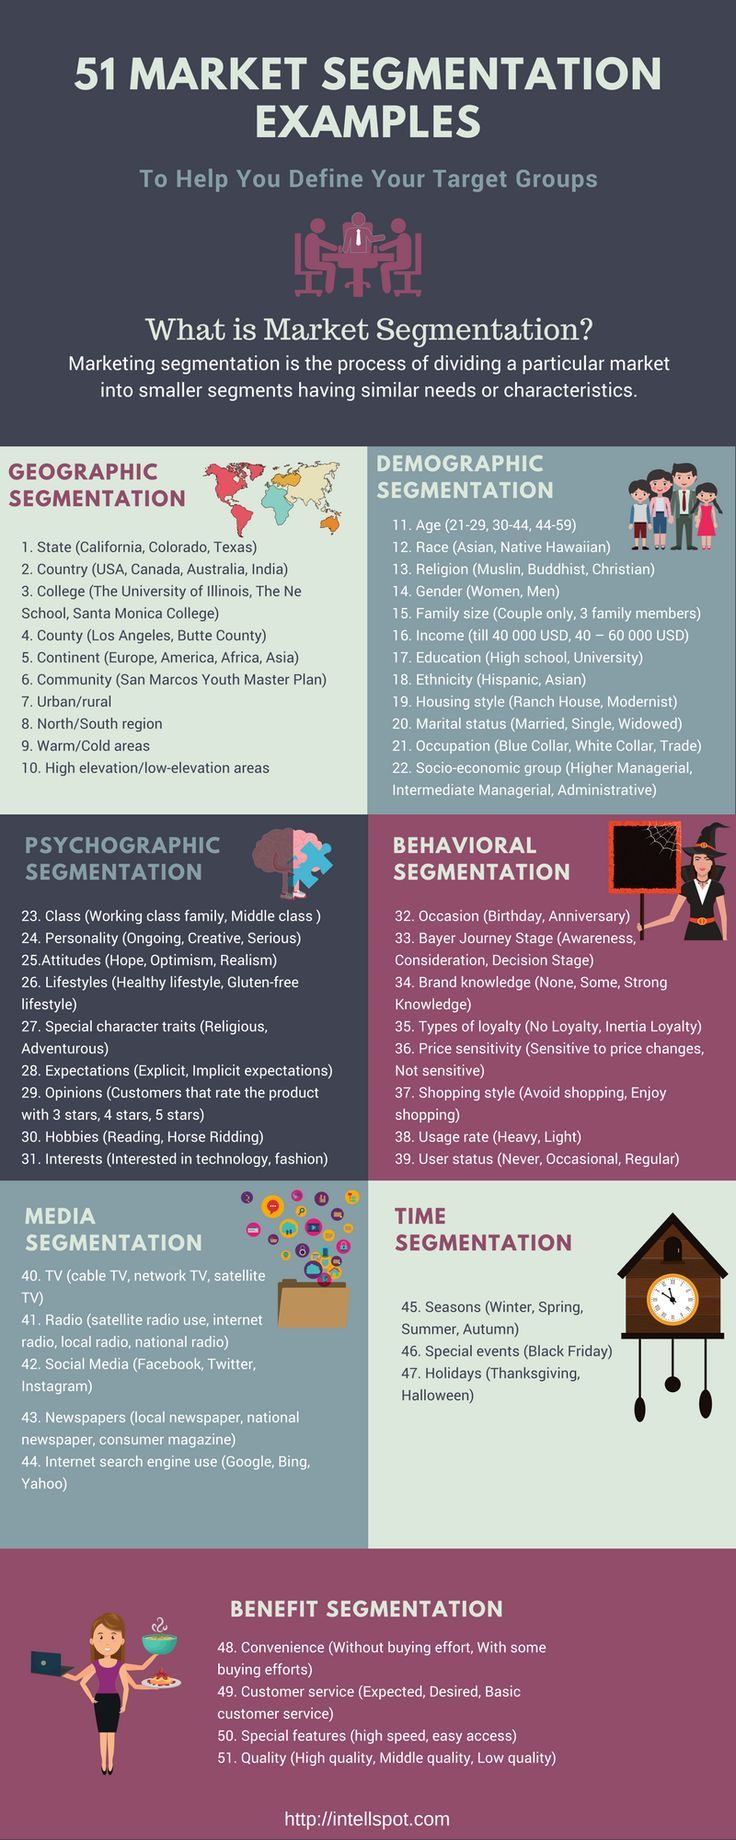 How To Reach Baby Boomers Gen Xers And Millennials With Your Online Marketing Infographic Marketing Market Segmentation What Is Marketing